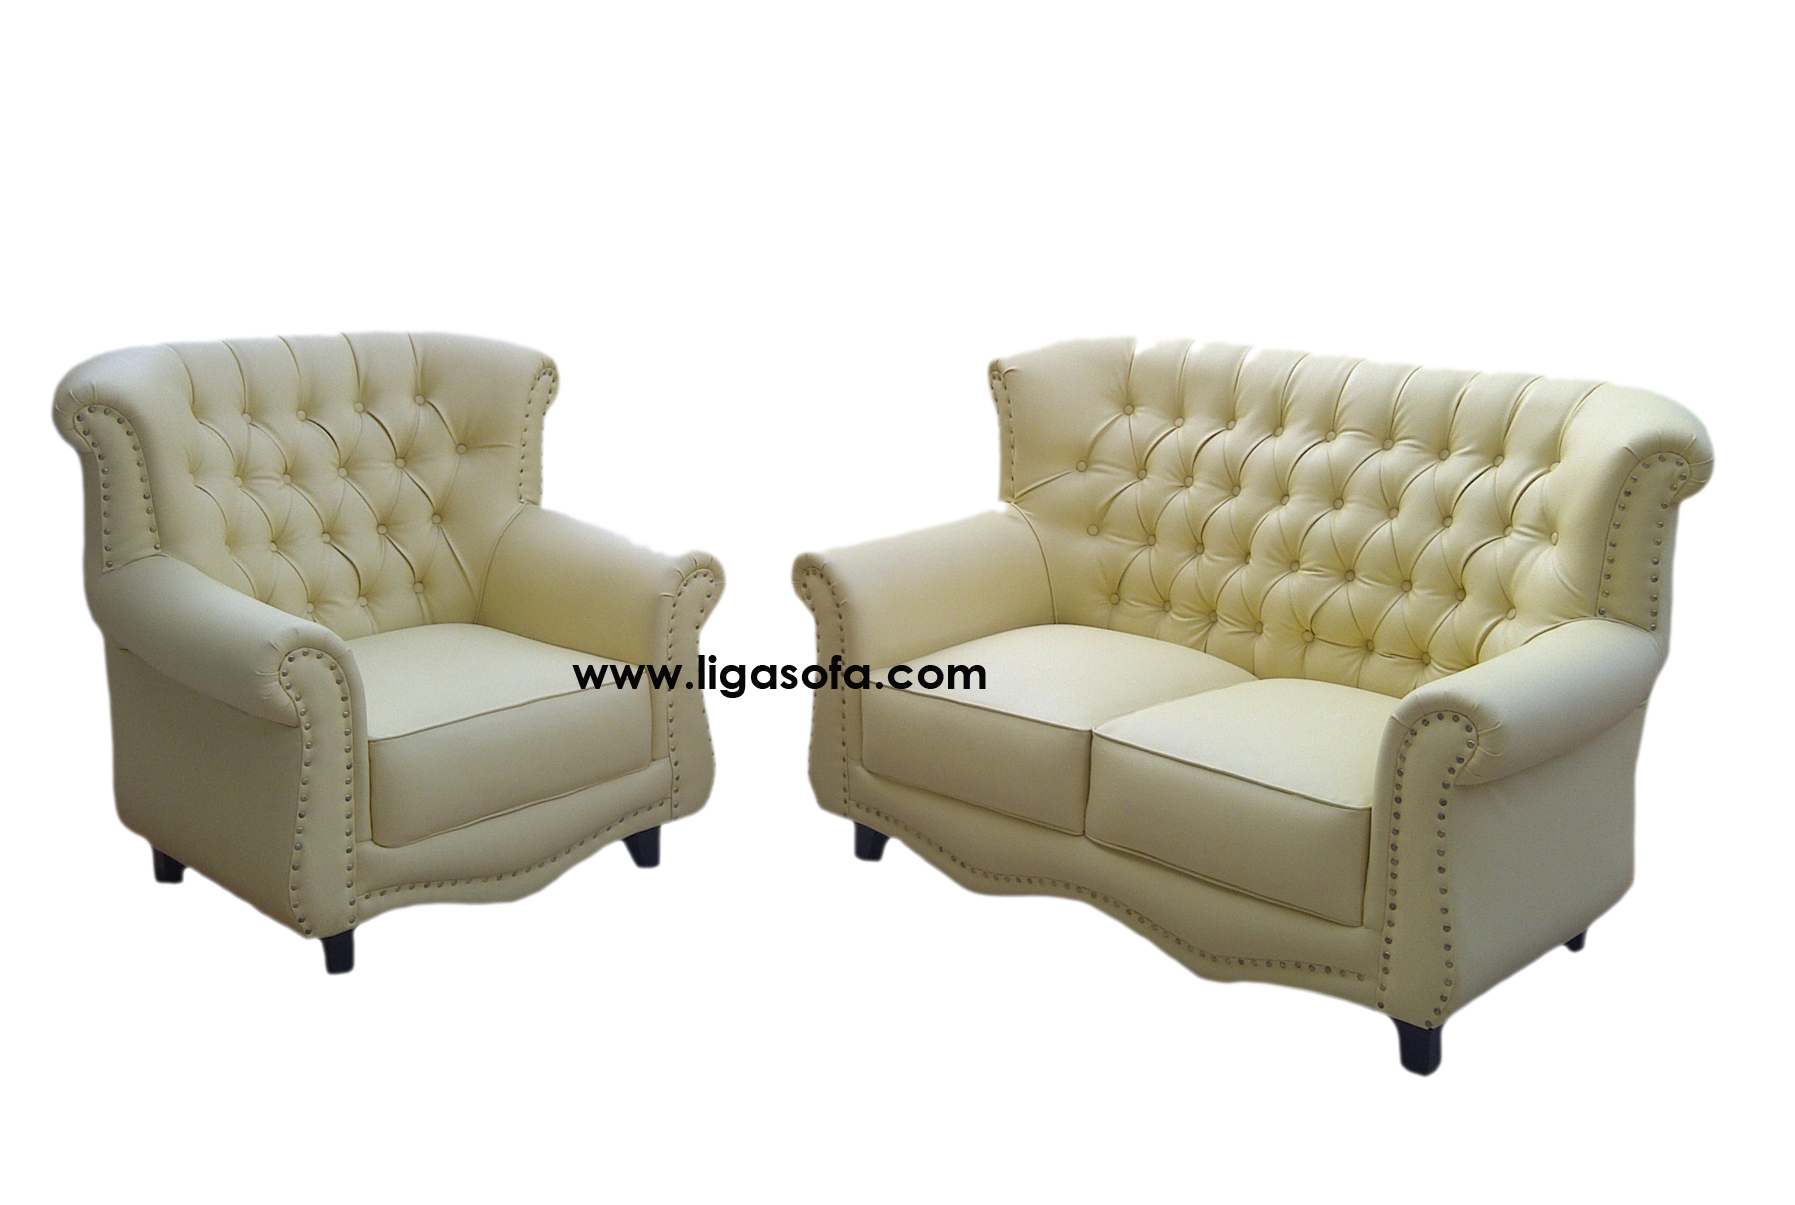 Chesterfield sofa jakarta for Couch jakarta